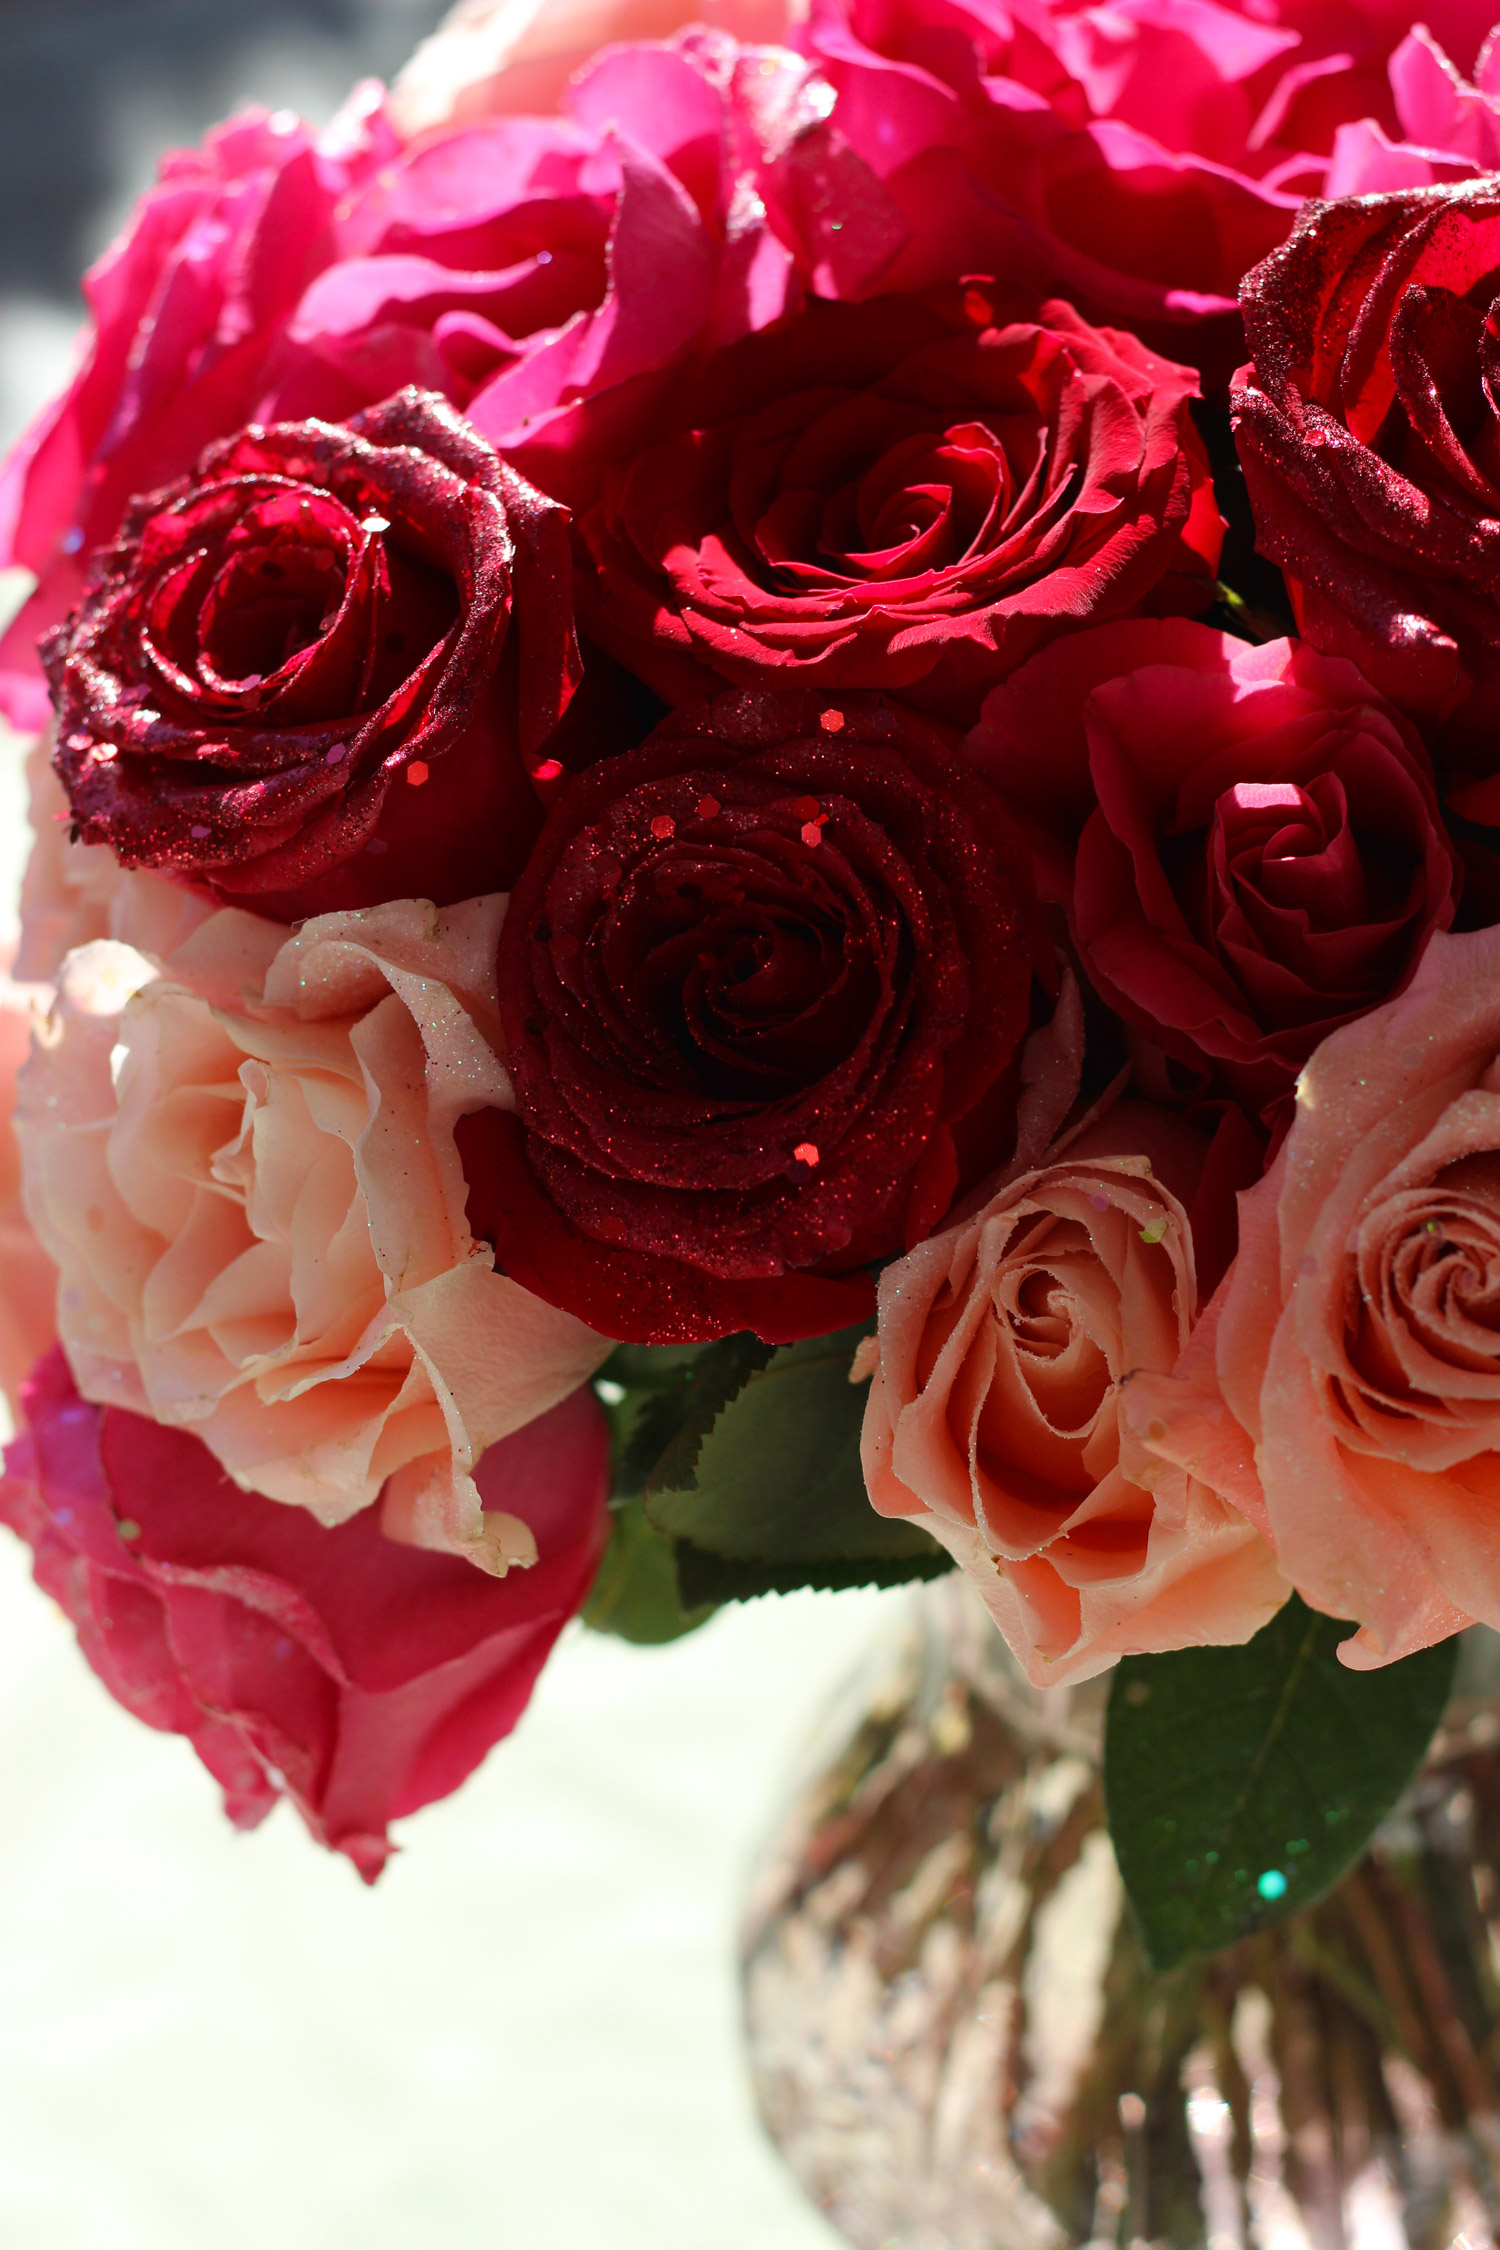 Half the roses will have glitter.